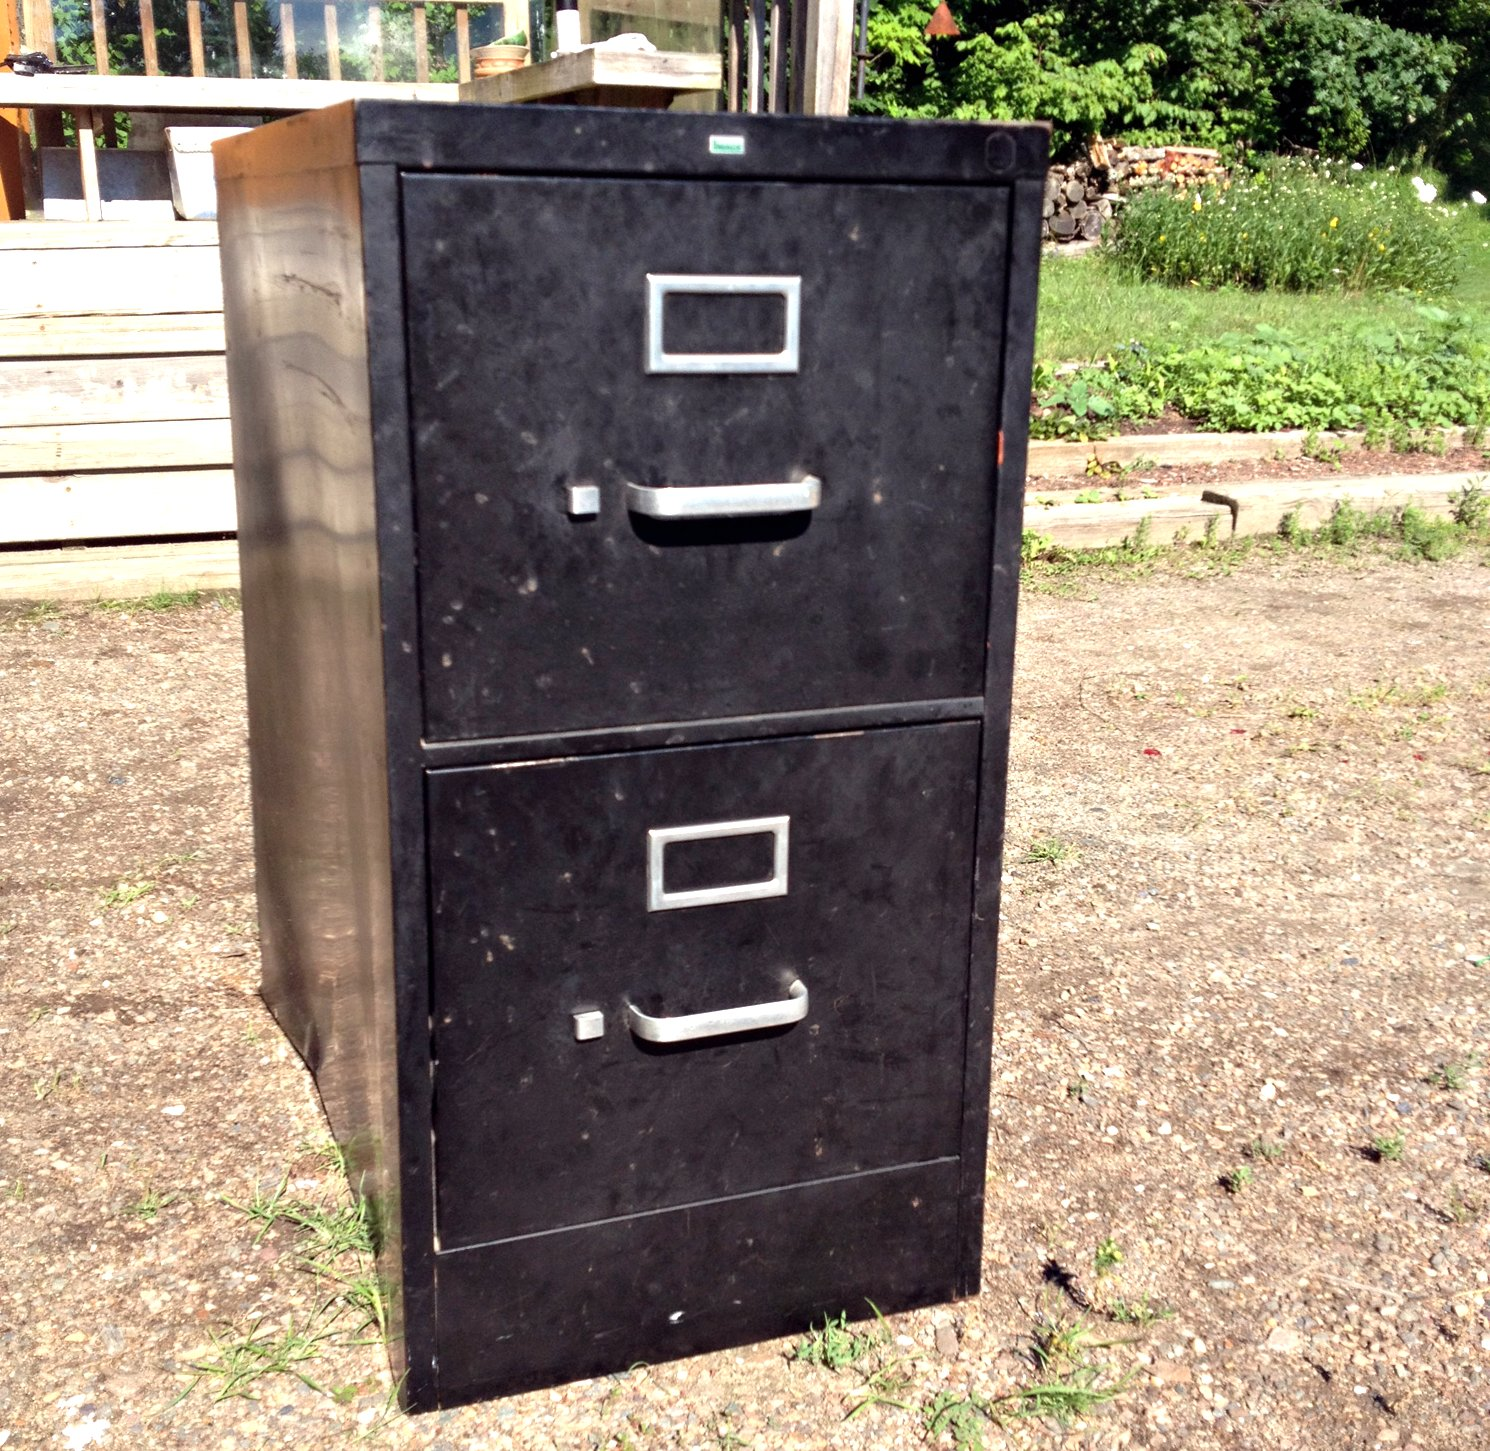 First I Popped Off The Hardware With A Little   Okay A Lot   Of Help From  Mike, And Spray Painted It Black. Then I Gave The Cabinet A Thorough Scrub  Down, ...